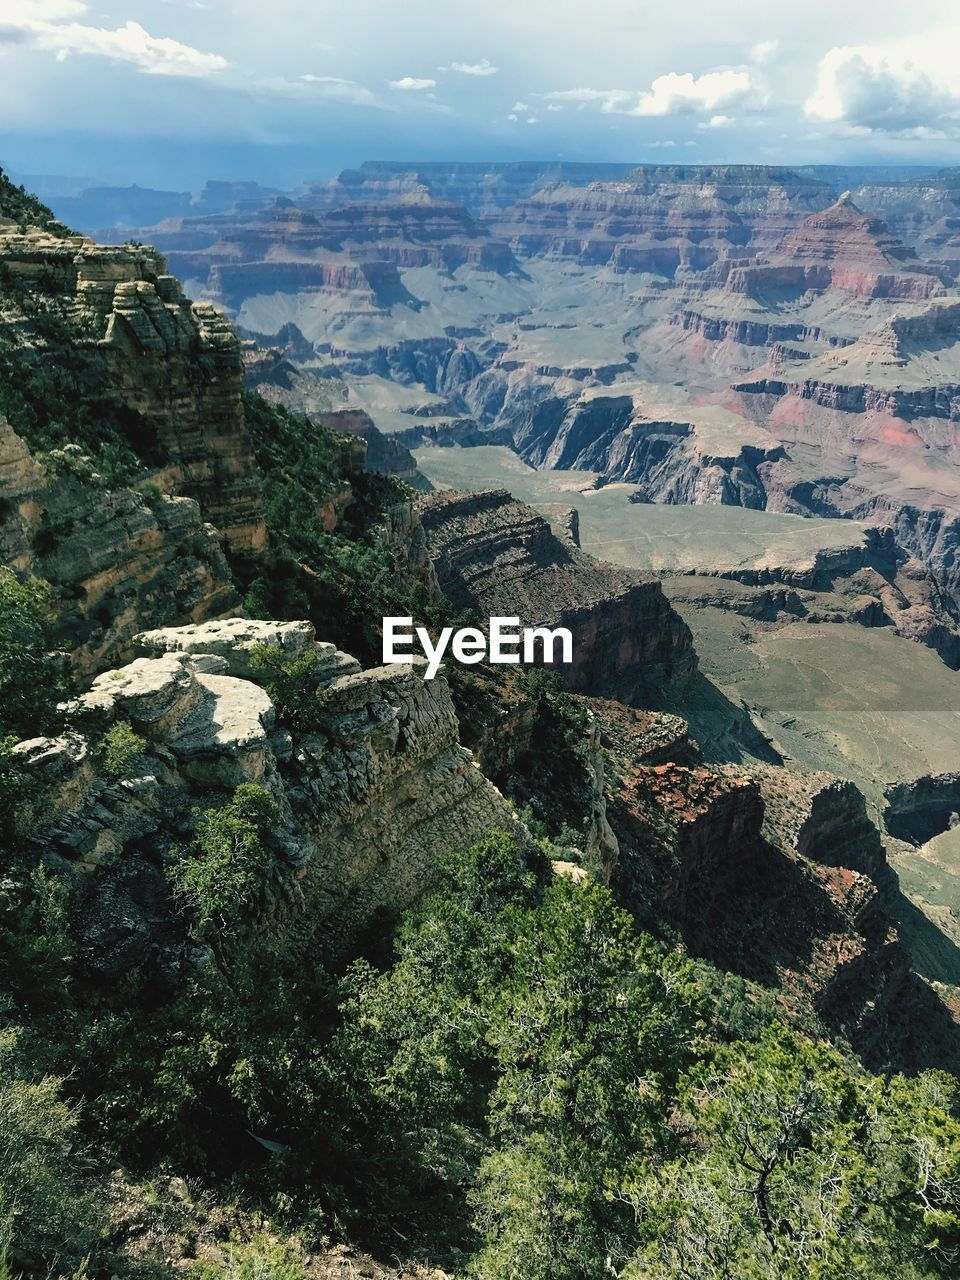 Photo taken in Grand Canyon, United States